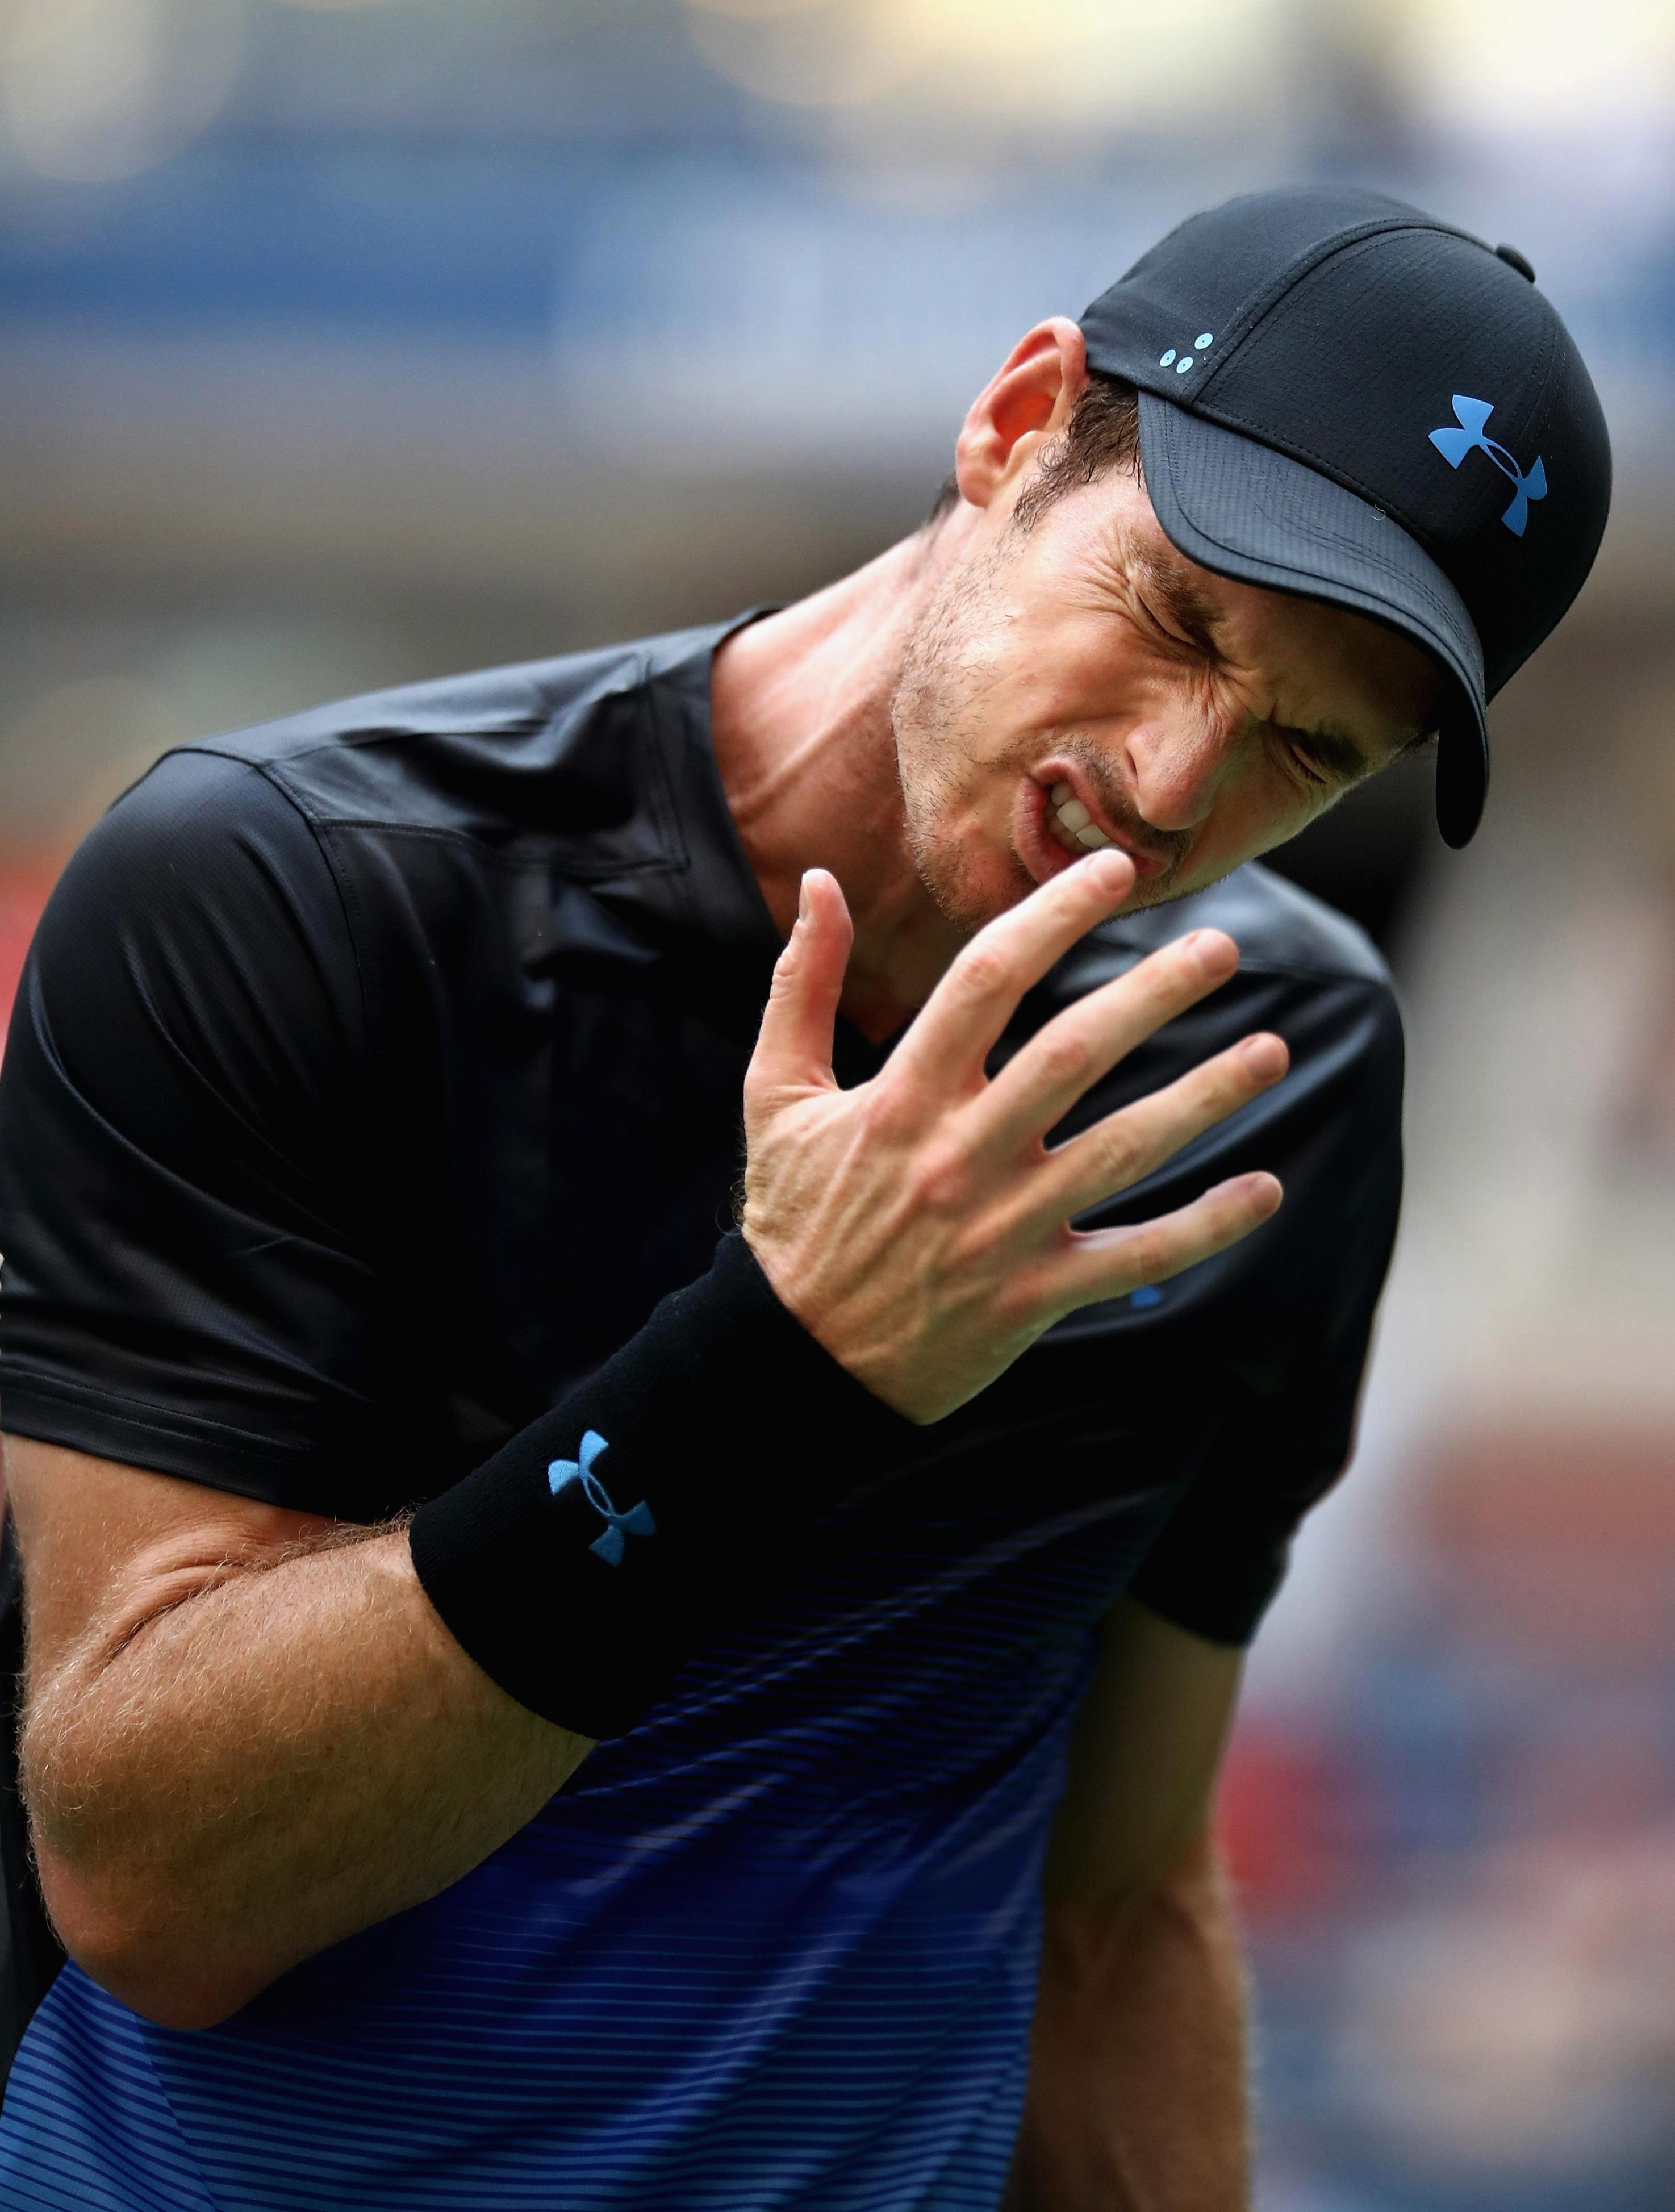 Andy Murray was sent crashing out of the US Open on Wednesday